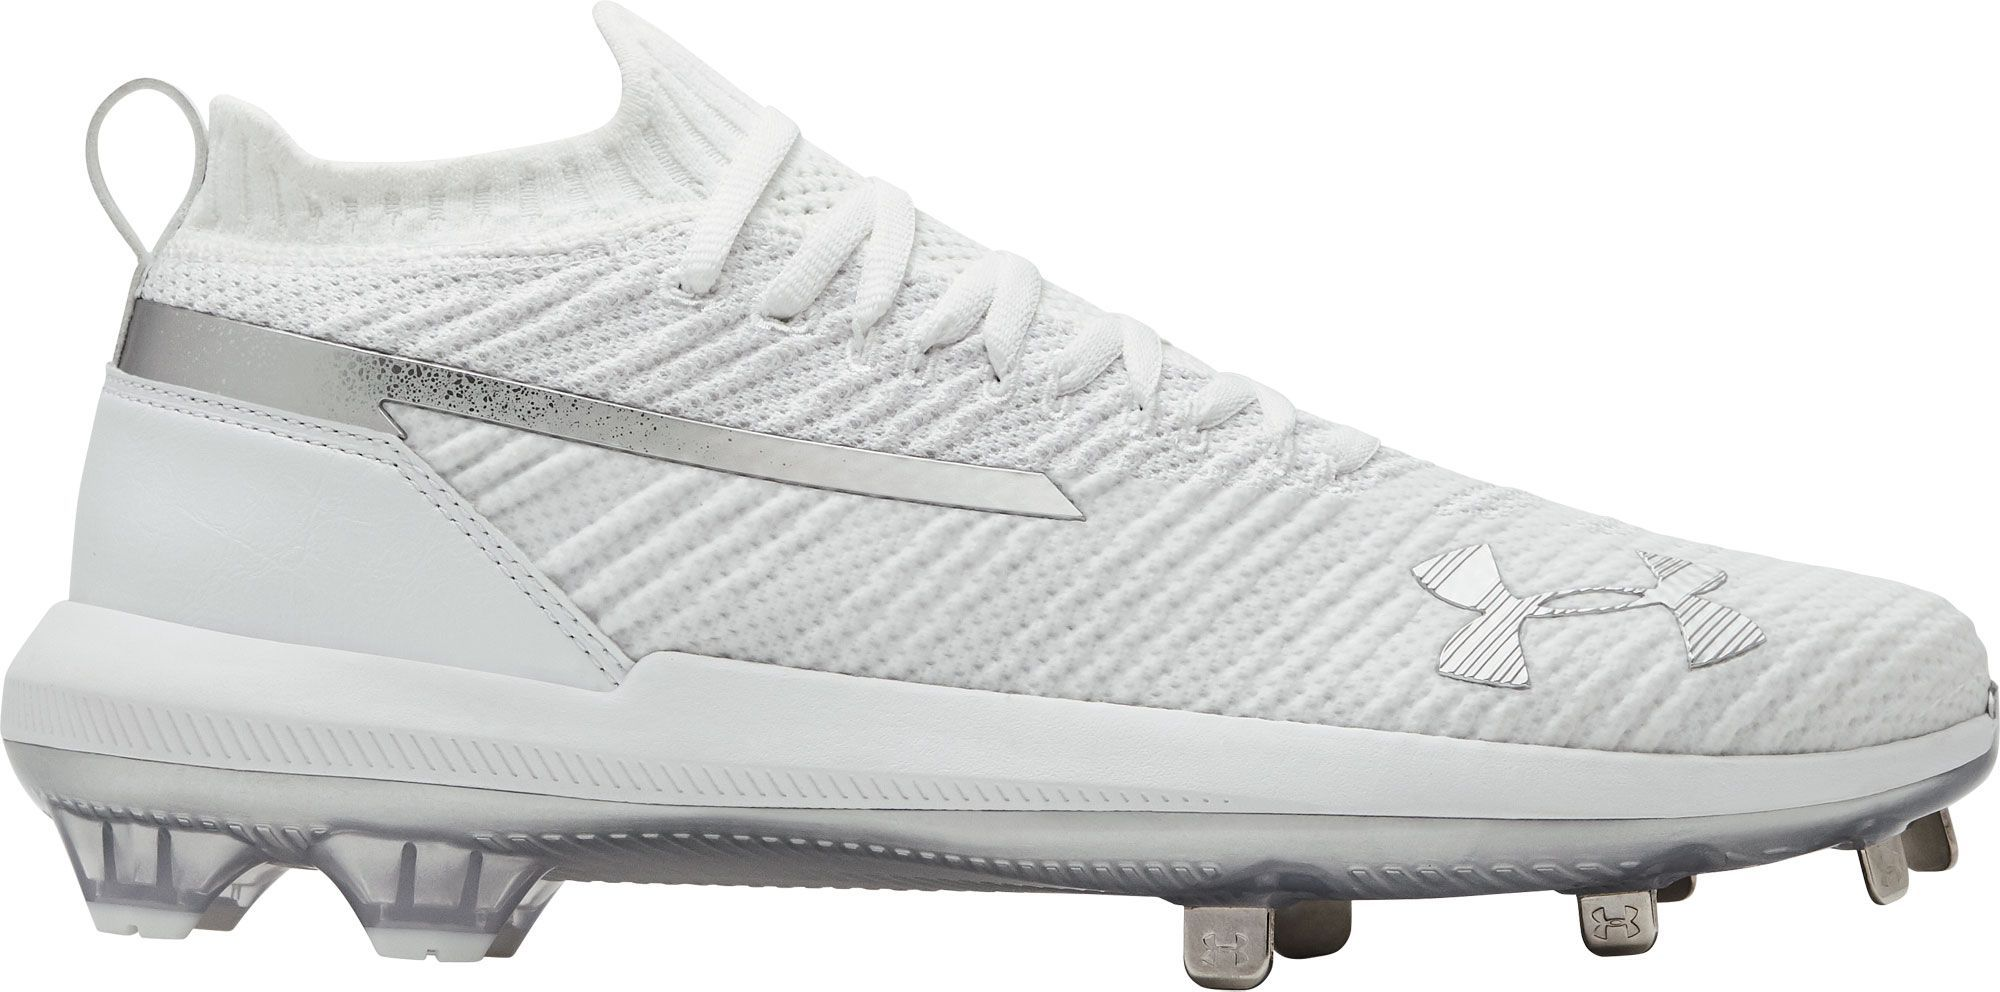 sports shoes b6c64 efded Under Armour Mens Harper 3 Metal Baseball Cleats, Size 7.0, White